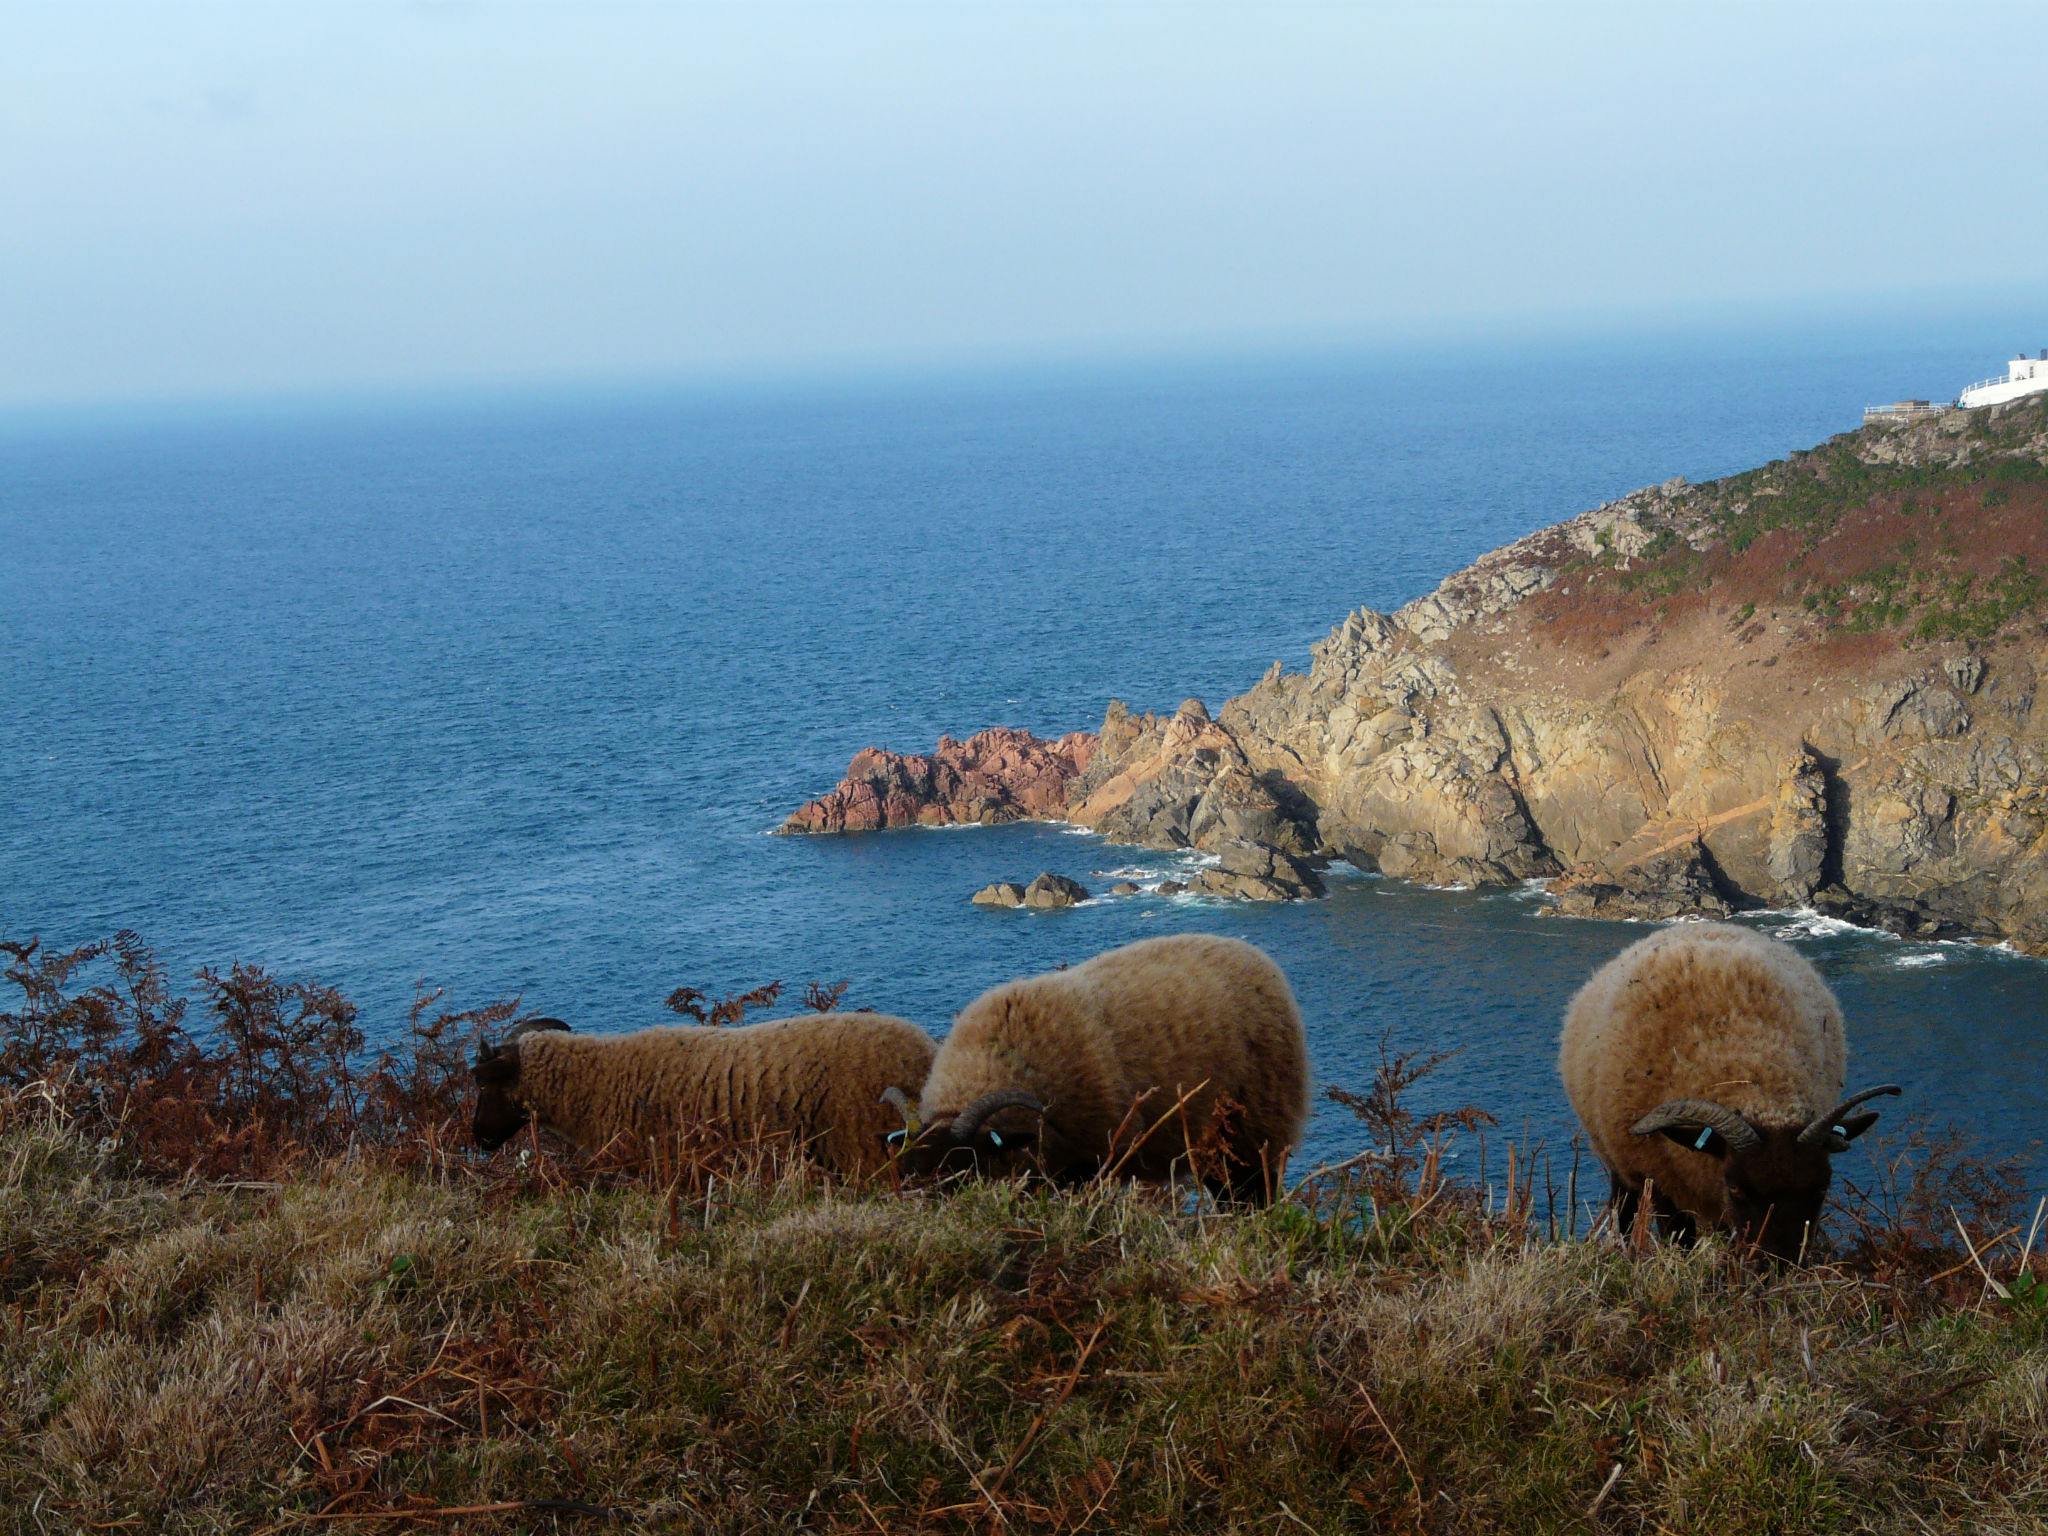 Manx loaghtan sheep at Le Don Paton. Photo by Aaron le Couteur (2)